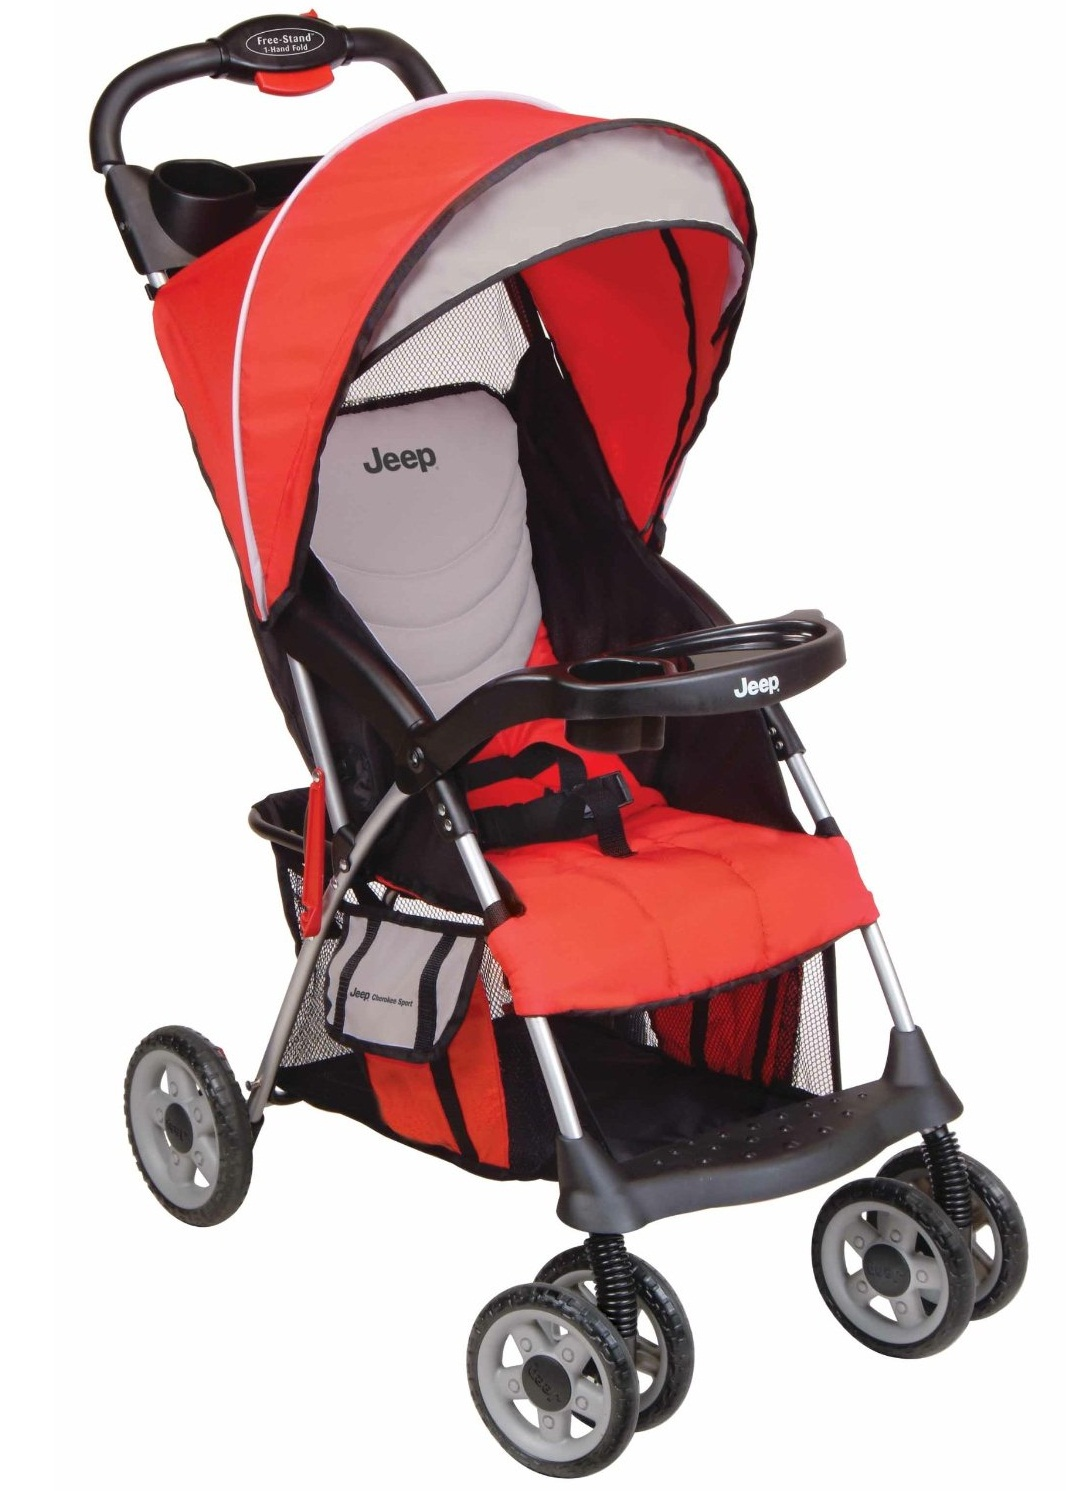 Review of Jeep Cherokee Sport Stroller